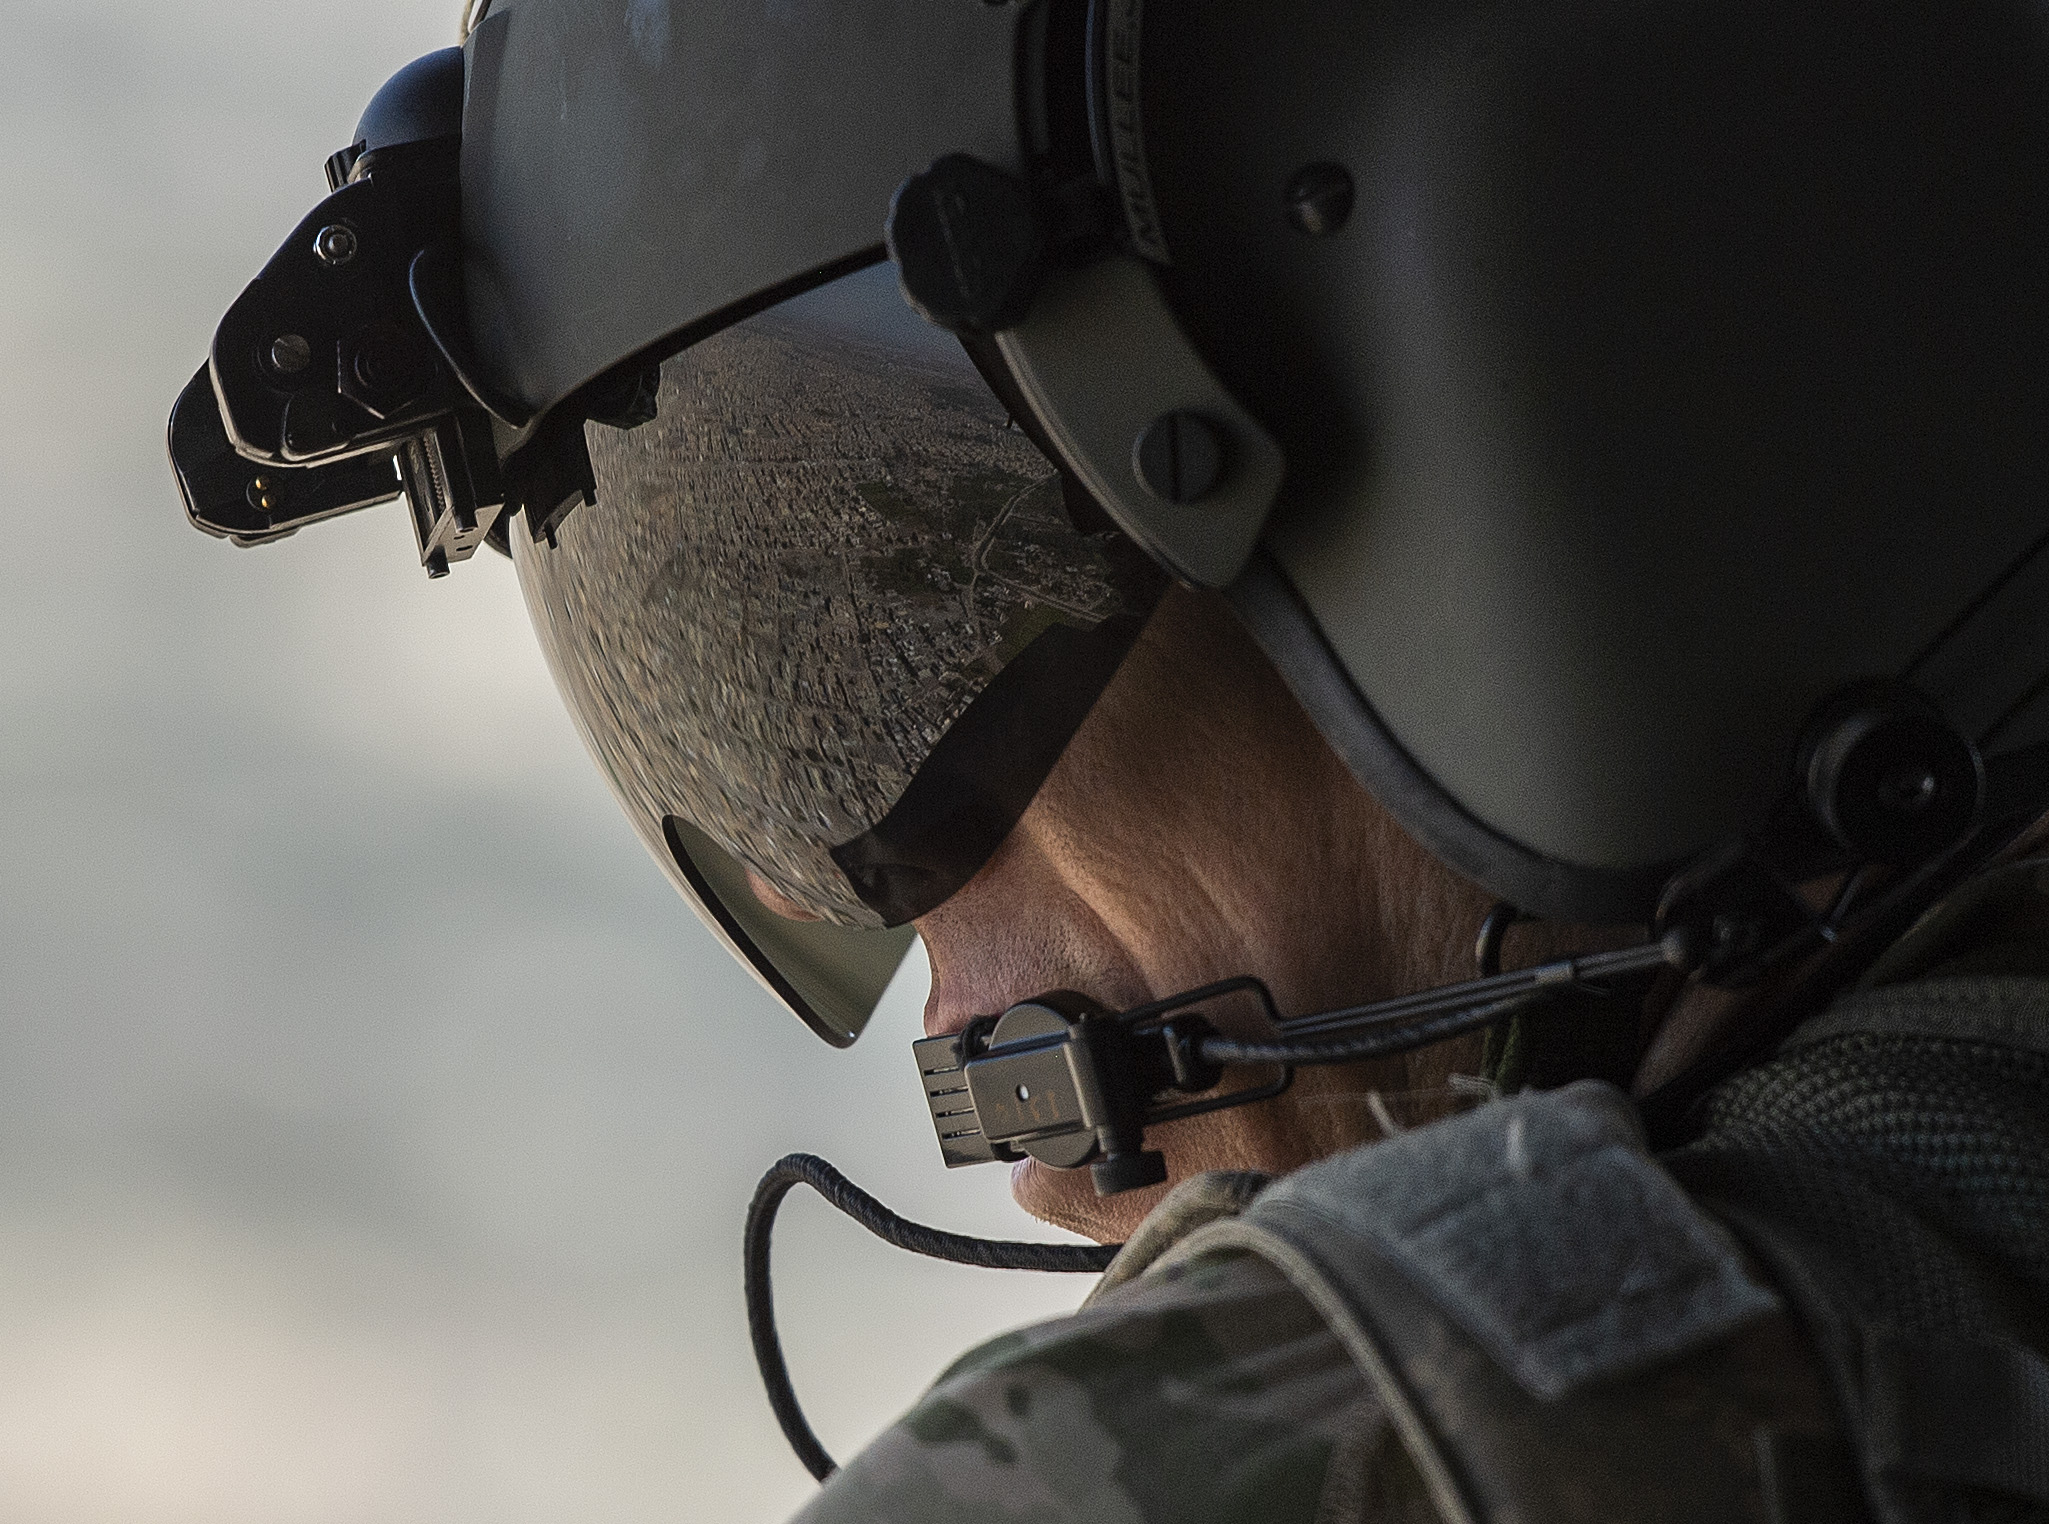 U.S. troops are withdrawing from Iraq. Washington should continue until it hits zero | Opinion